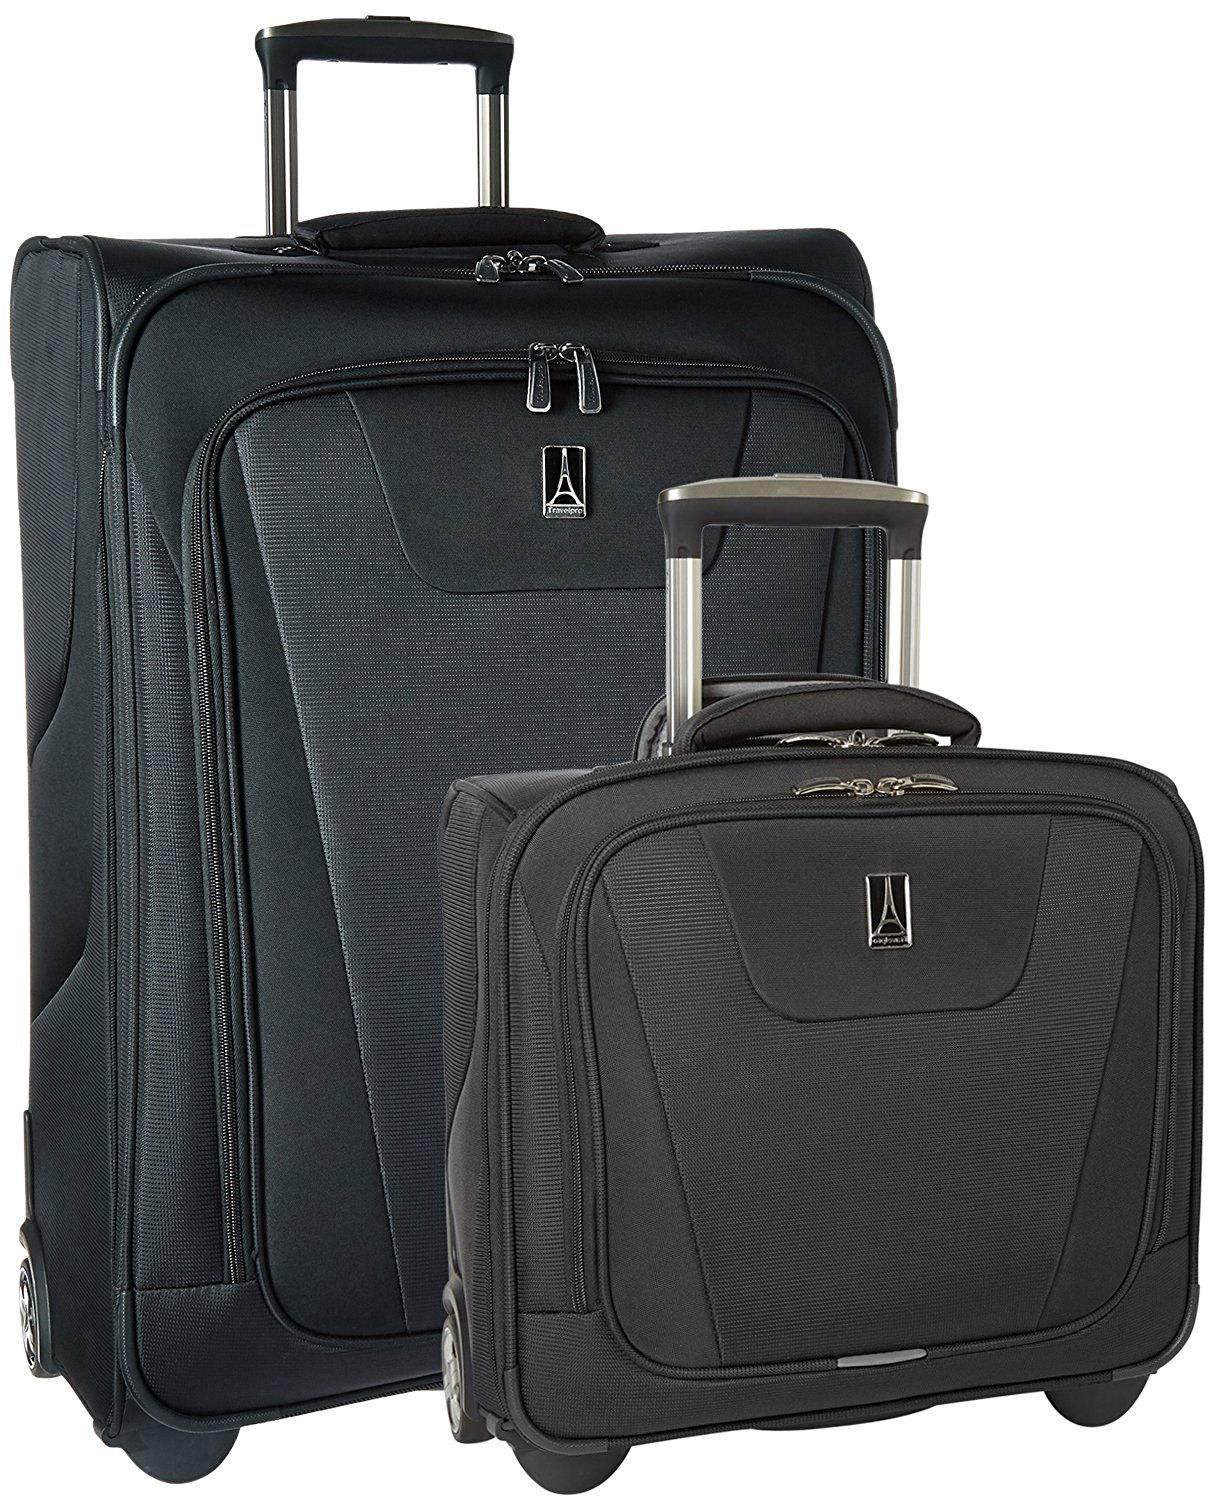 Travelpro Maxlite 4 2 Piece set  26  Expandable Rollaboard and Rolling Tote     Review more details here   Travel luggage a21be356b809f